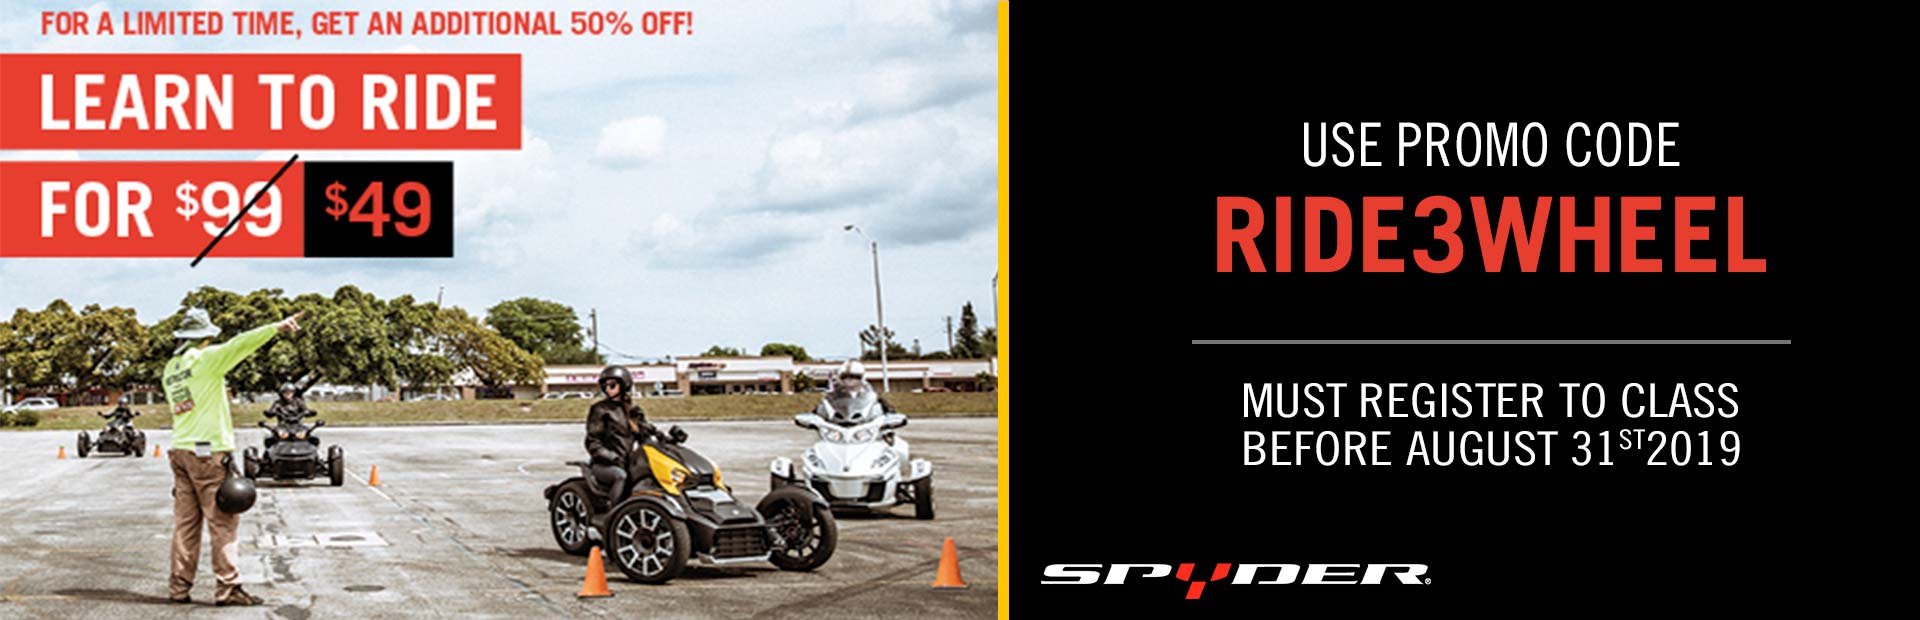 CAN-AM RIDER EDUCATION PROGRAM - Spyder